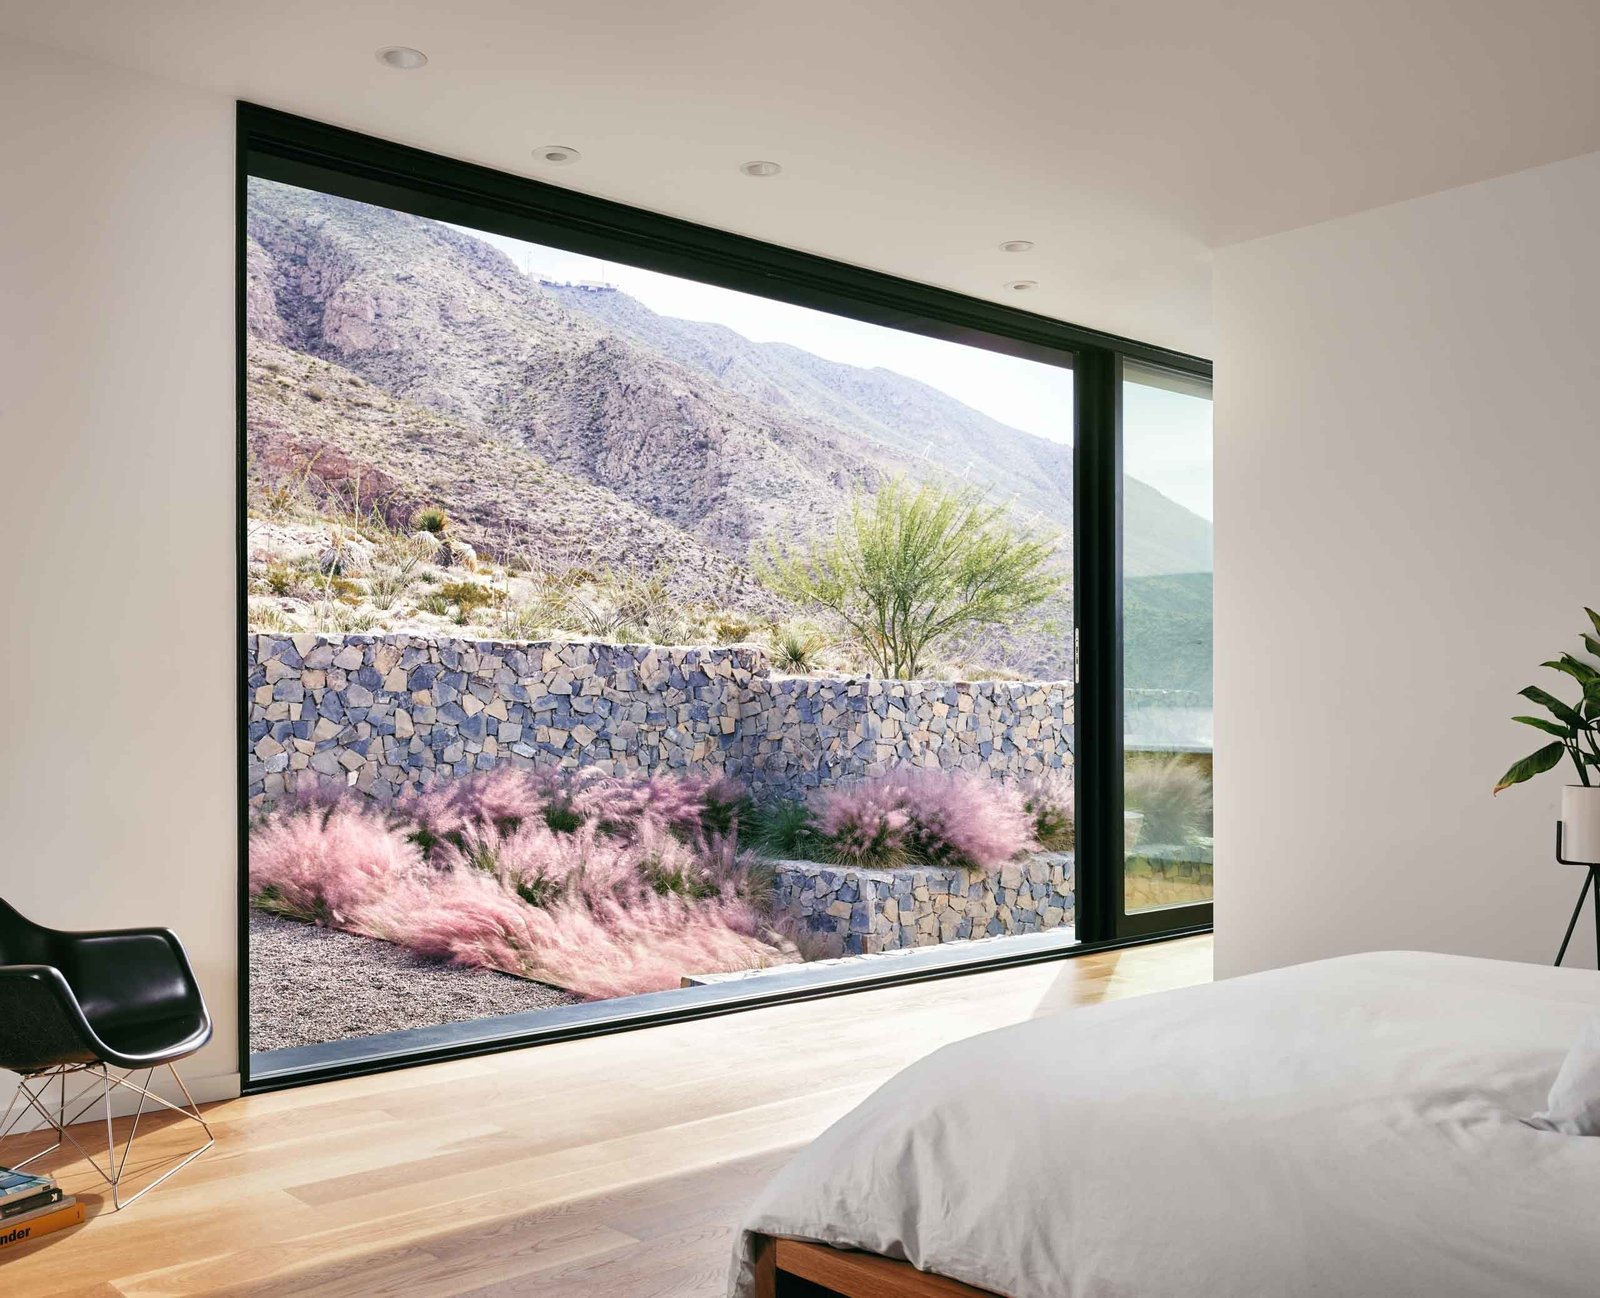 A multi-slide door in the master suite opens up to the natural mountain preserve. Tagged: Bedroom and Light Hardwood Floor. West Texas Vistas by Western Window Systems